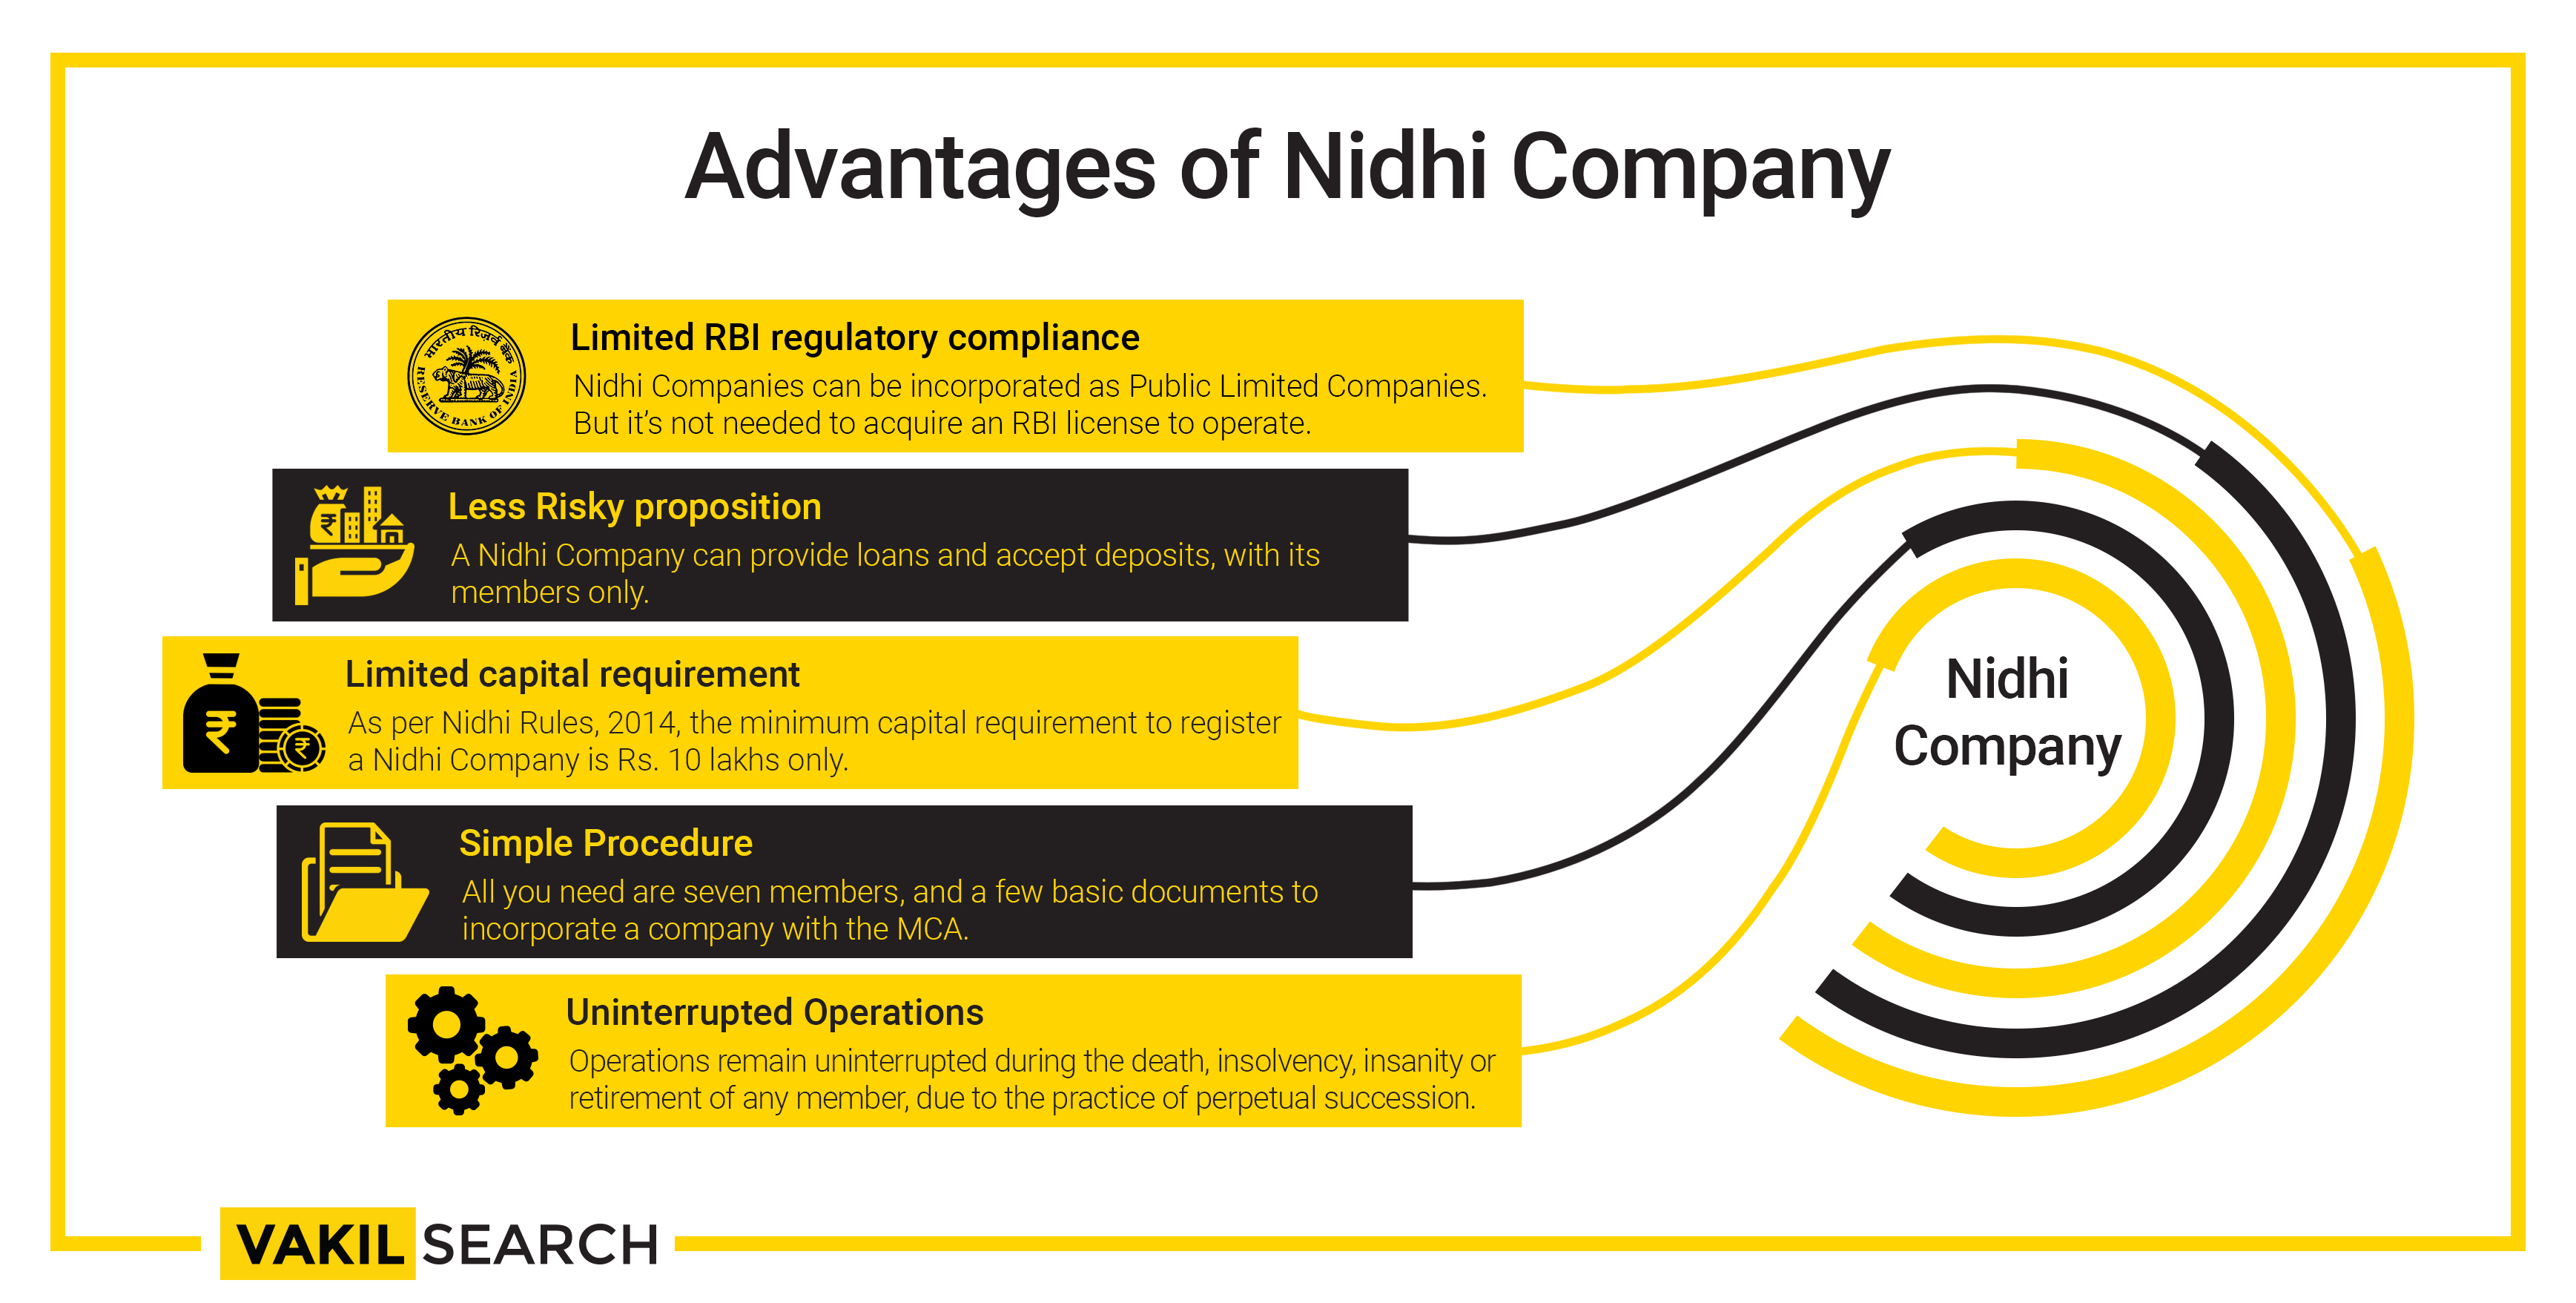 Advantages of Nidhi Company